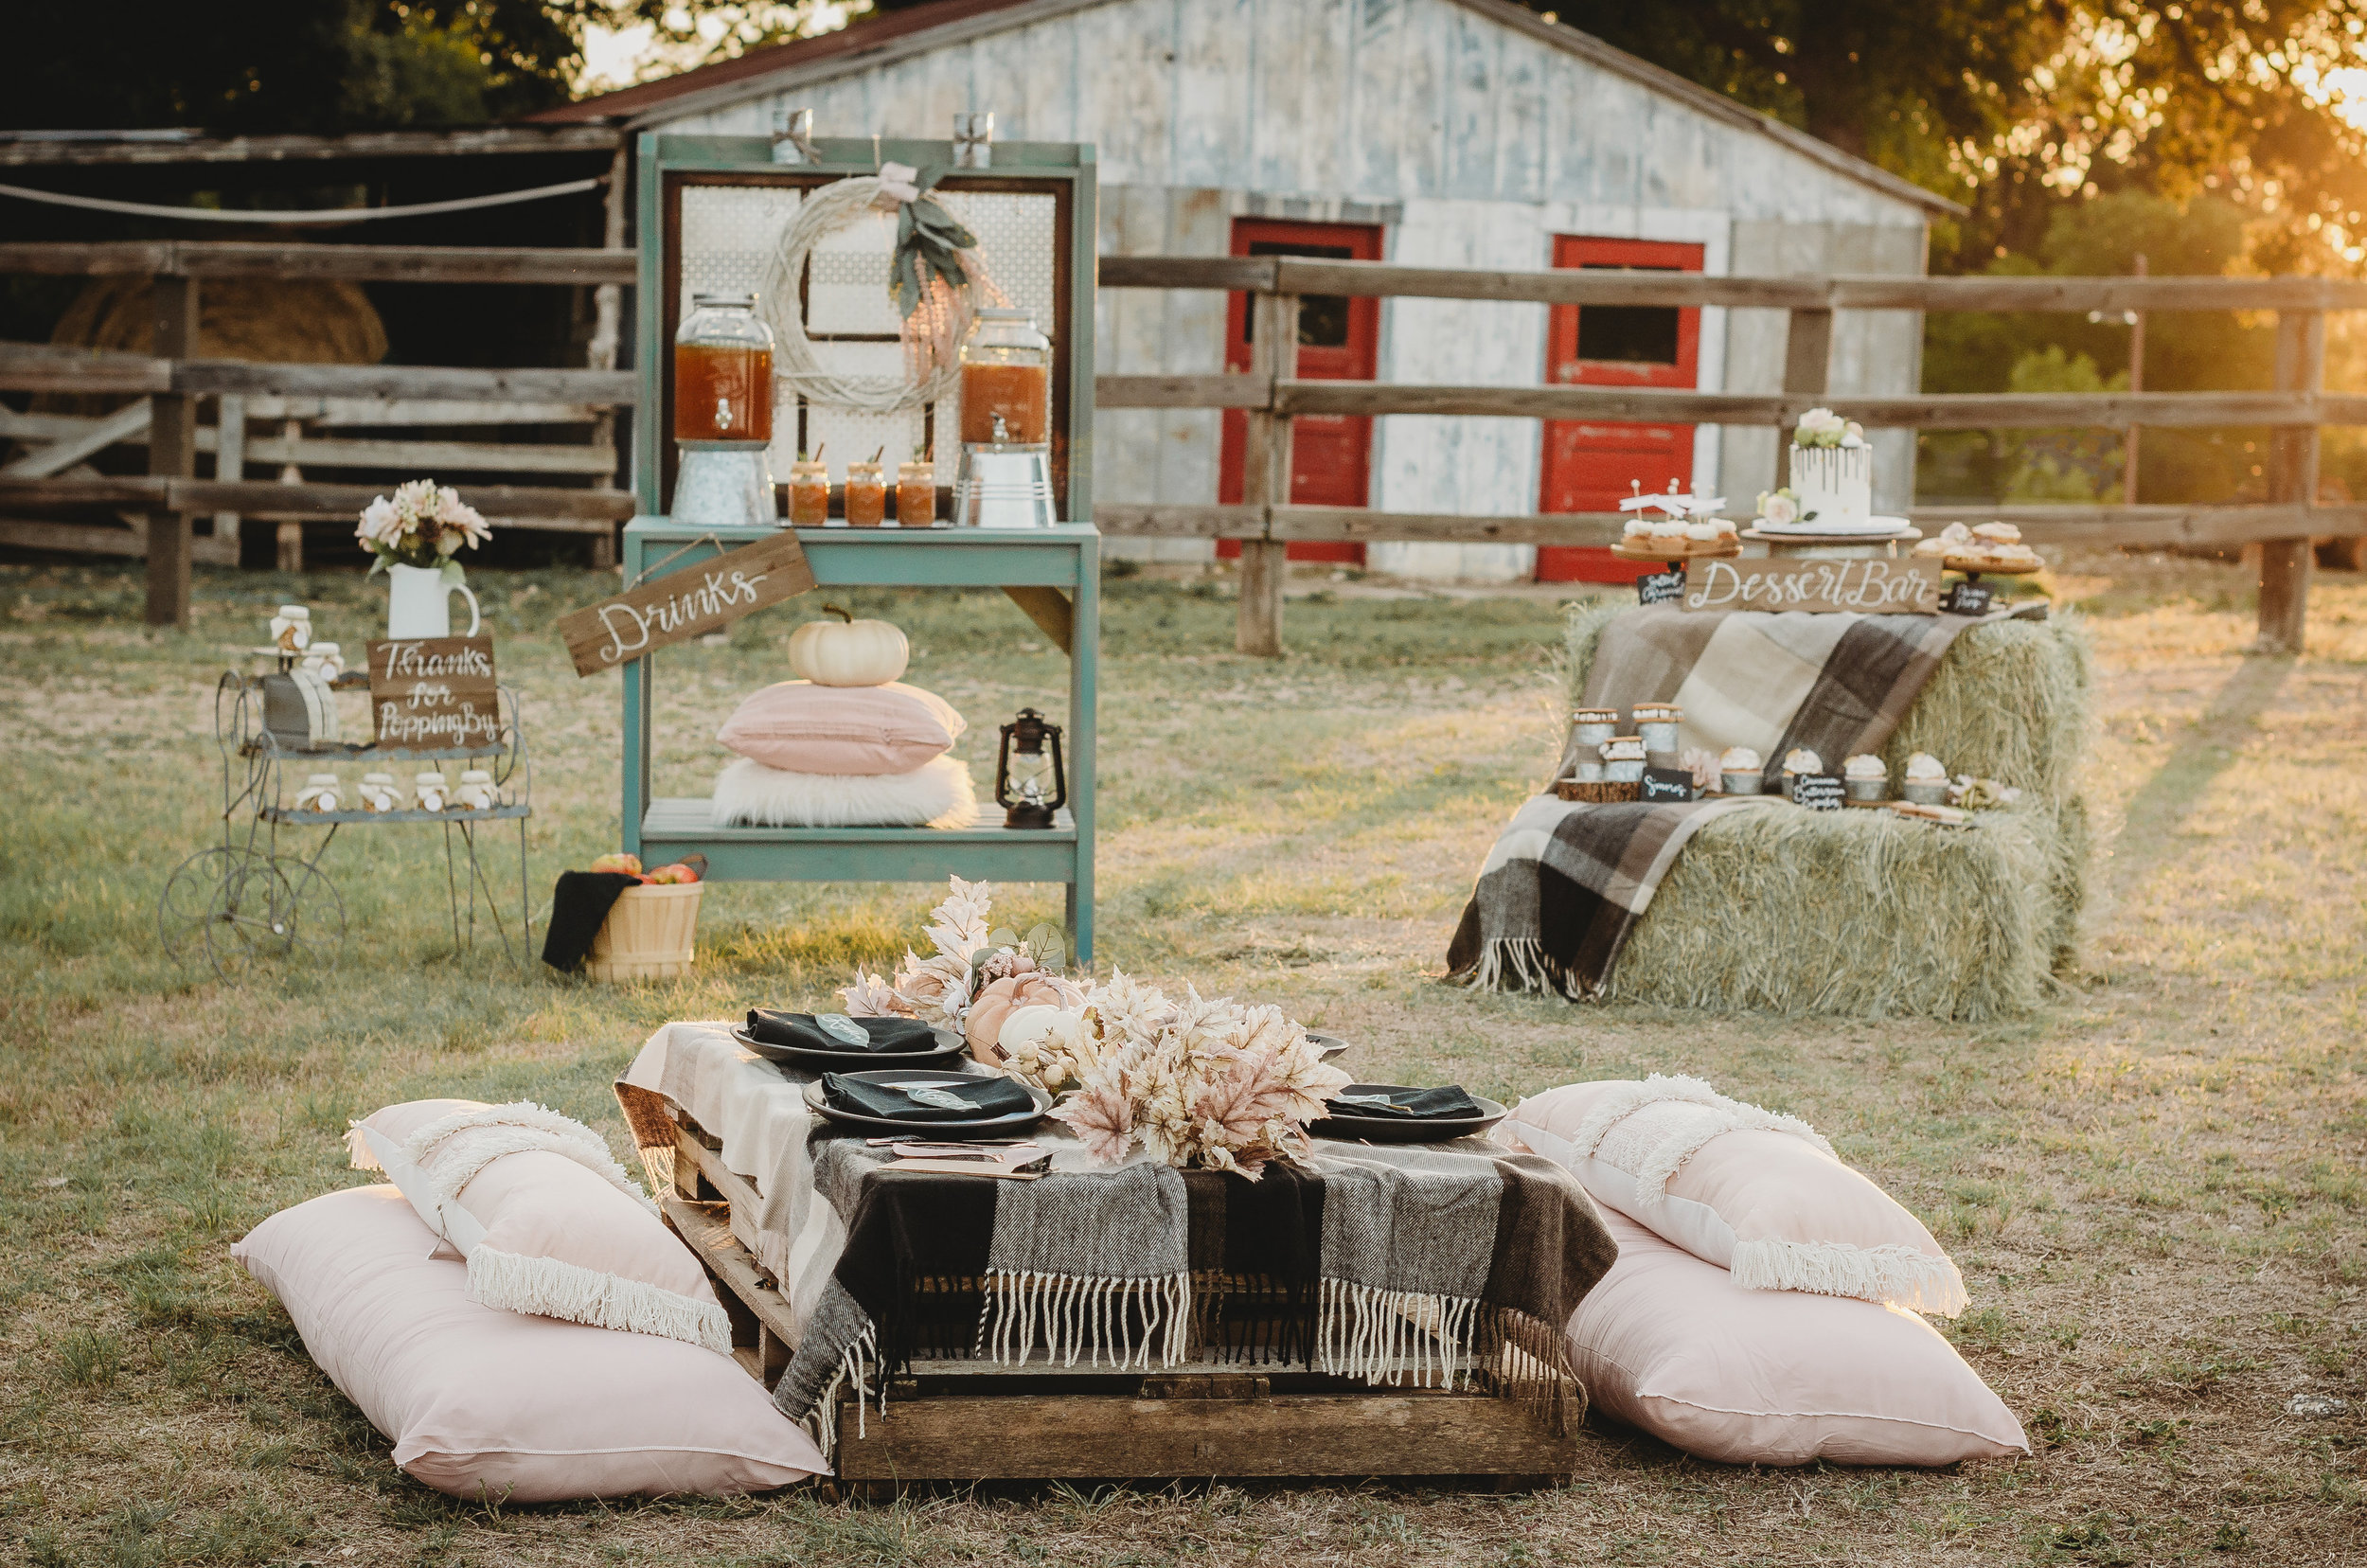 All the details on how to plan a Falling in Love themed bridal shower with a rustic touch. Click to see the entire fall bridal shower that you will fall in love with by party stylist Mint Event Design. #bridalshowers #bridalshowerideas #rusticwedding #rusticbridalshower #bridalshowerdecor #farmwedding